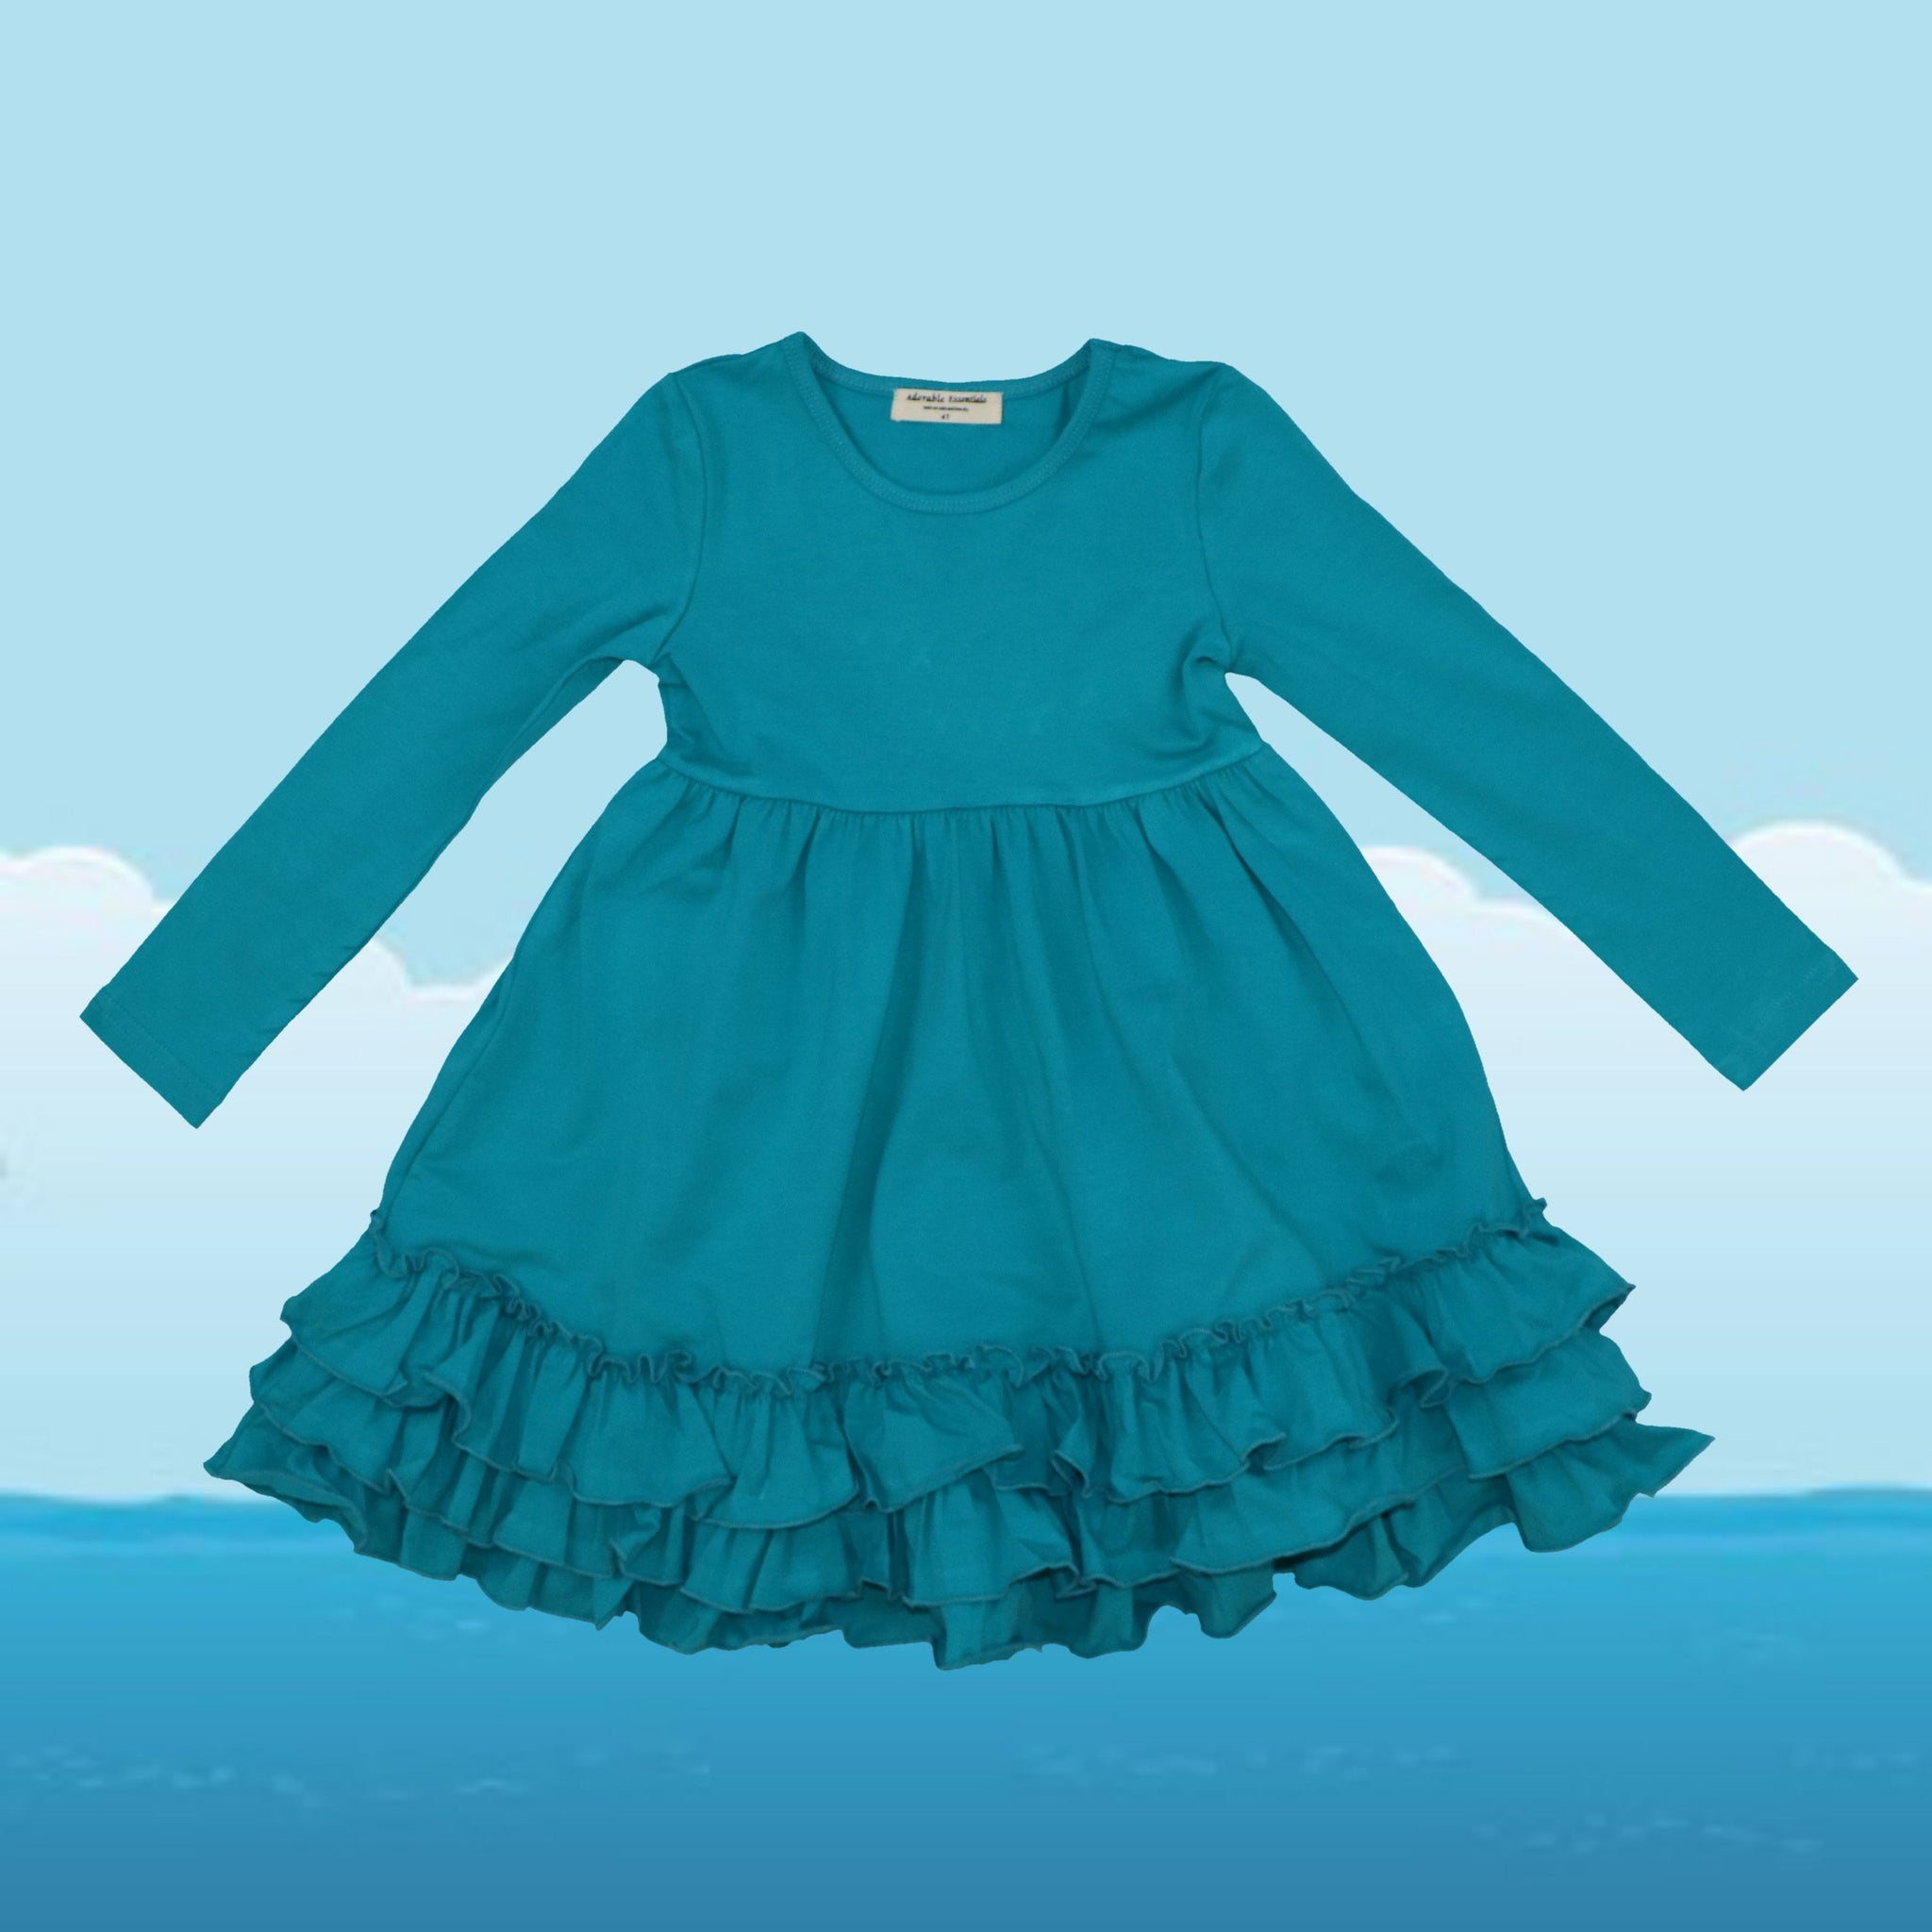 Adorable Essentials, Seaside Dress,,Adorable Essentials, LLC